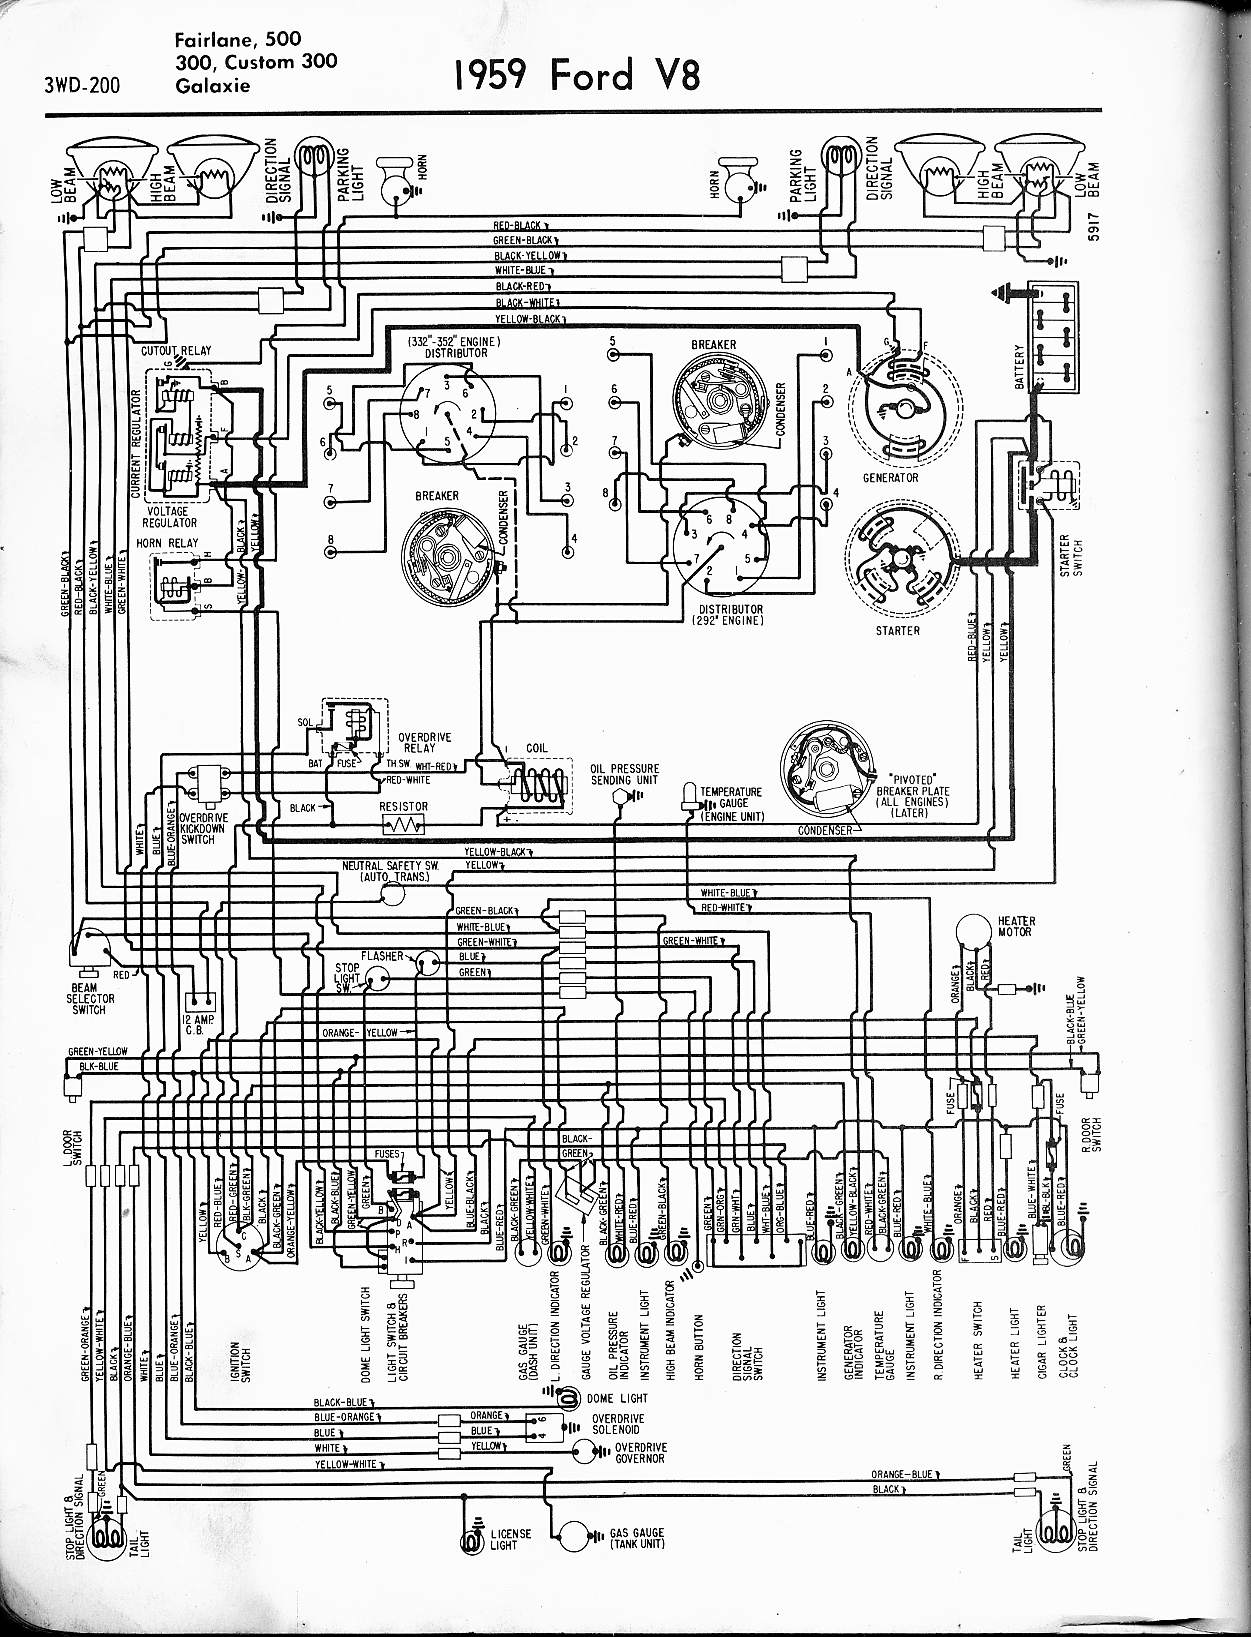 MWire5765 200 57 65 ford wiring diagrams 1959 ford wiring diagram at gsmx.co